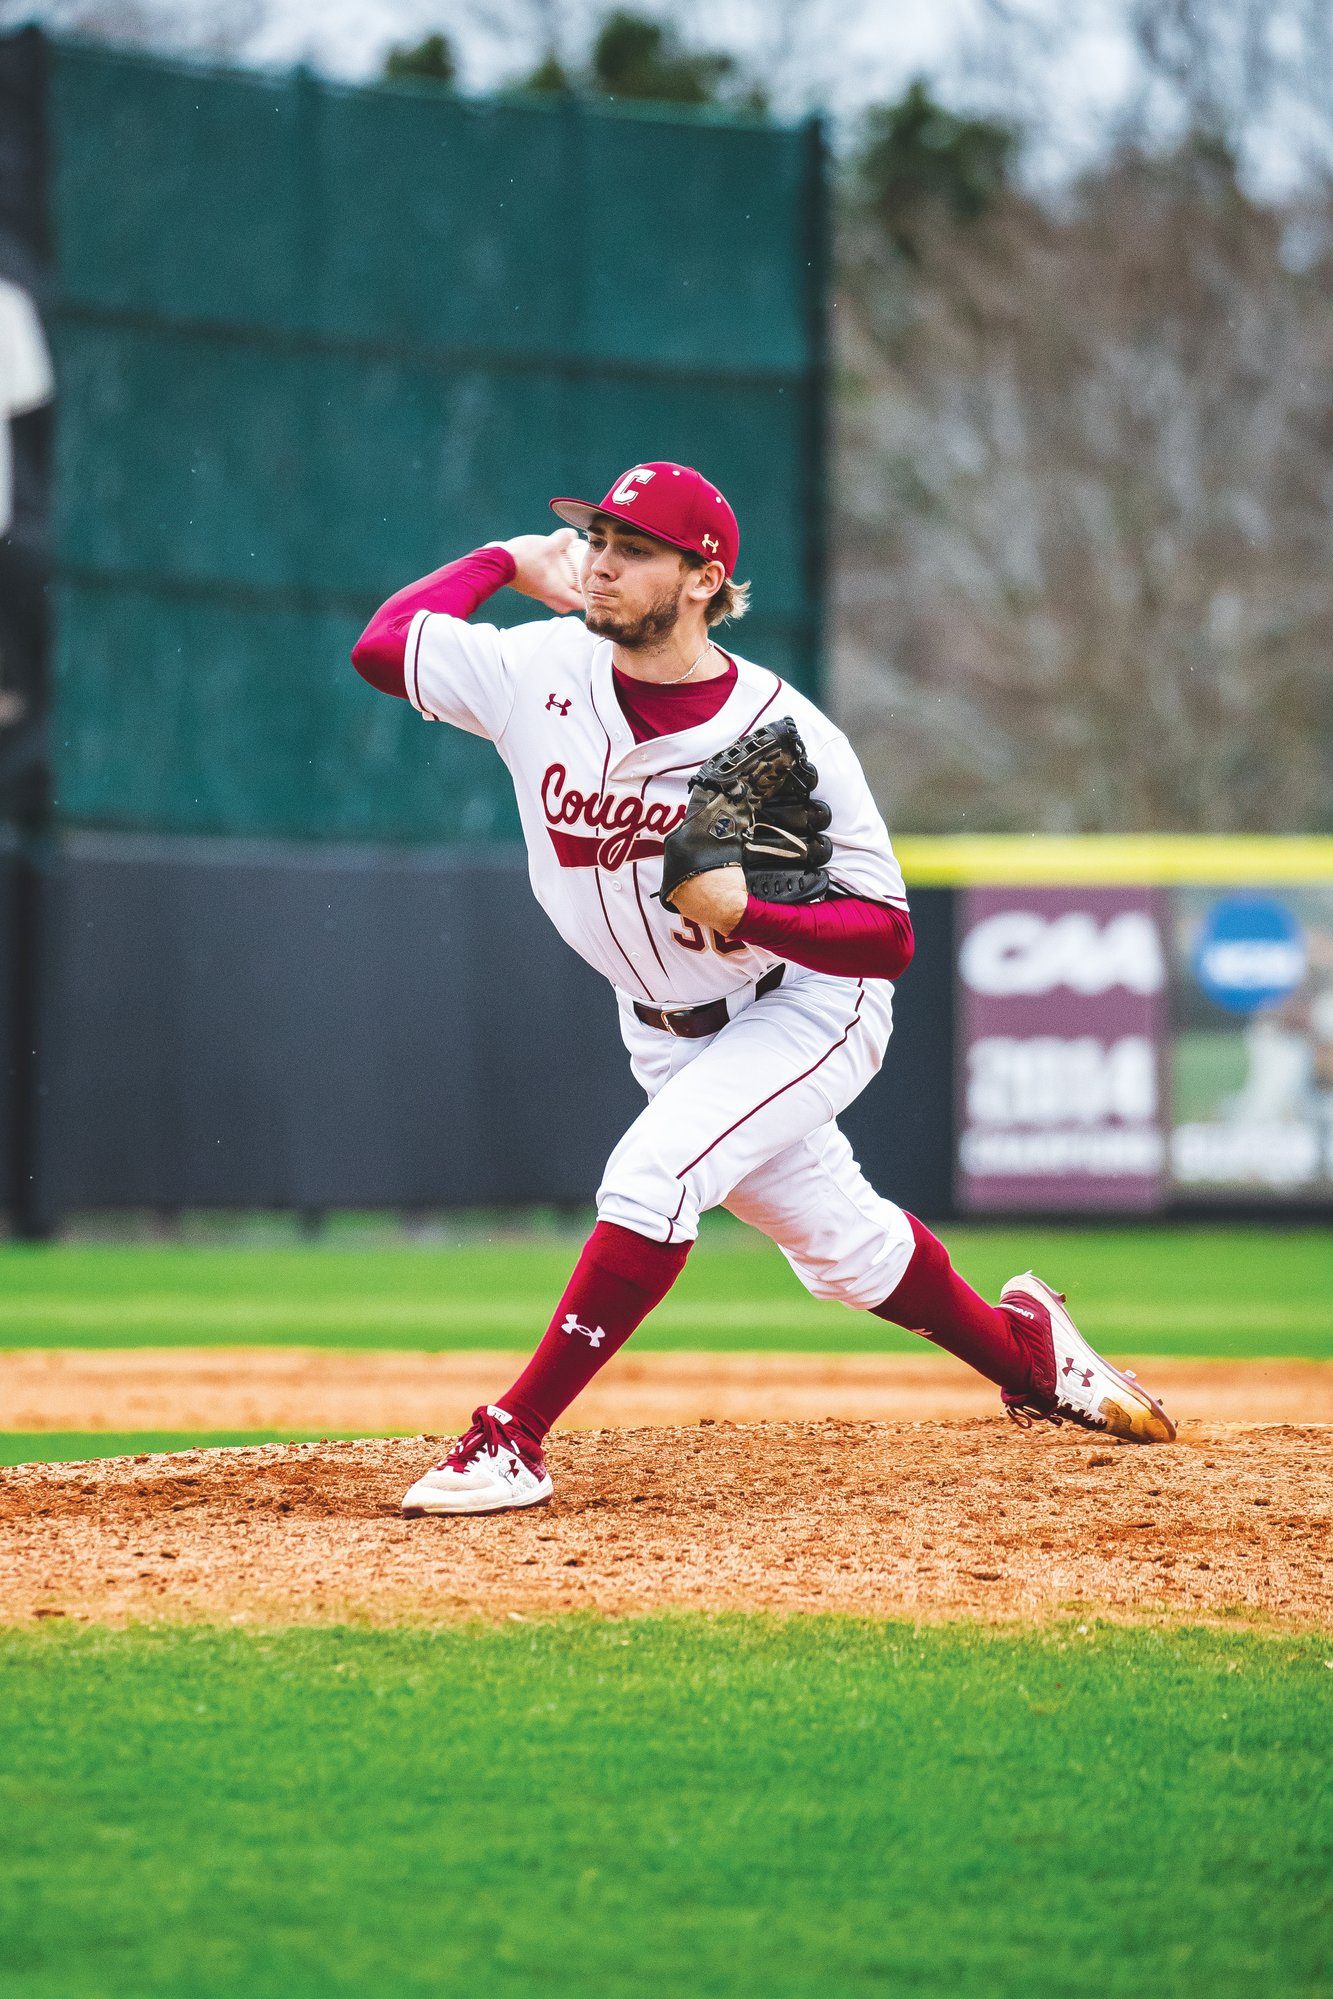 Former Sumter pitcher Tradd James has the opportunity to return to College of Charleston next year if he so chooses after his senior season was cancelled this spring due to the coronavirus.